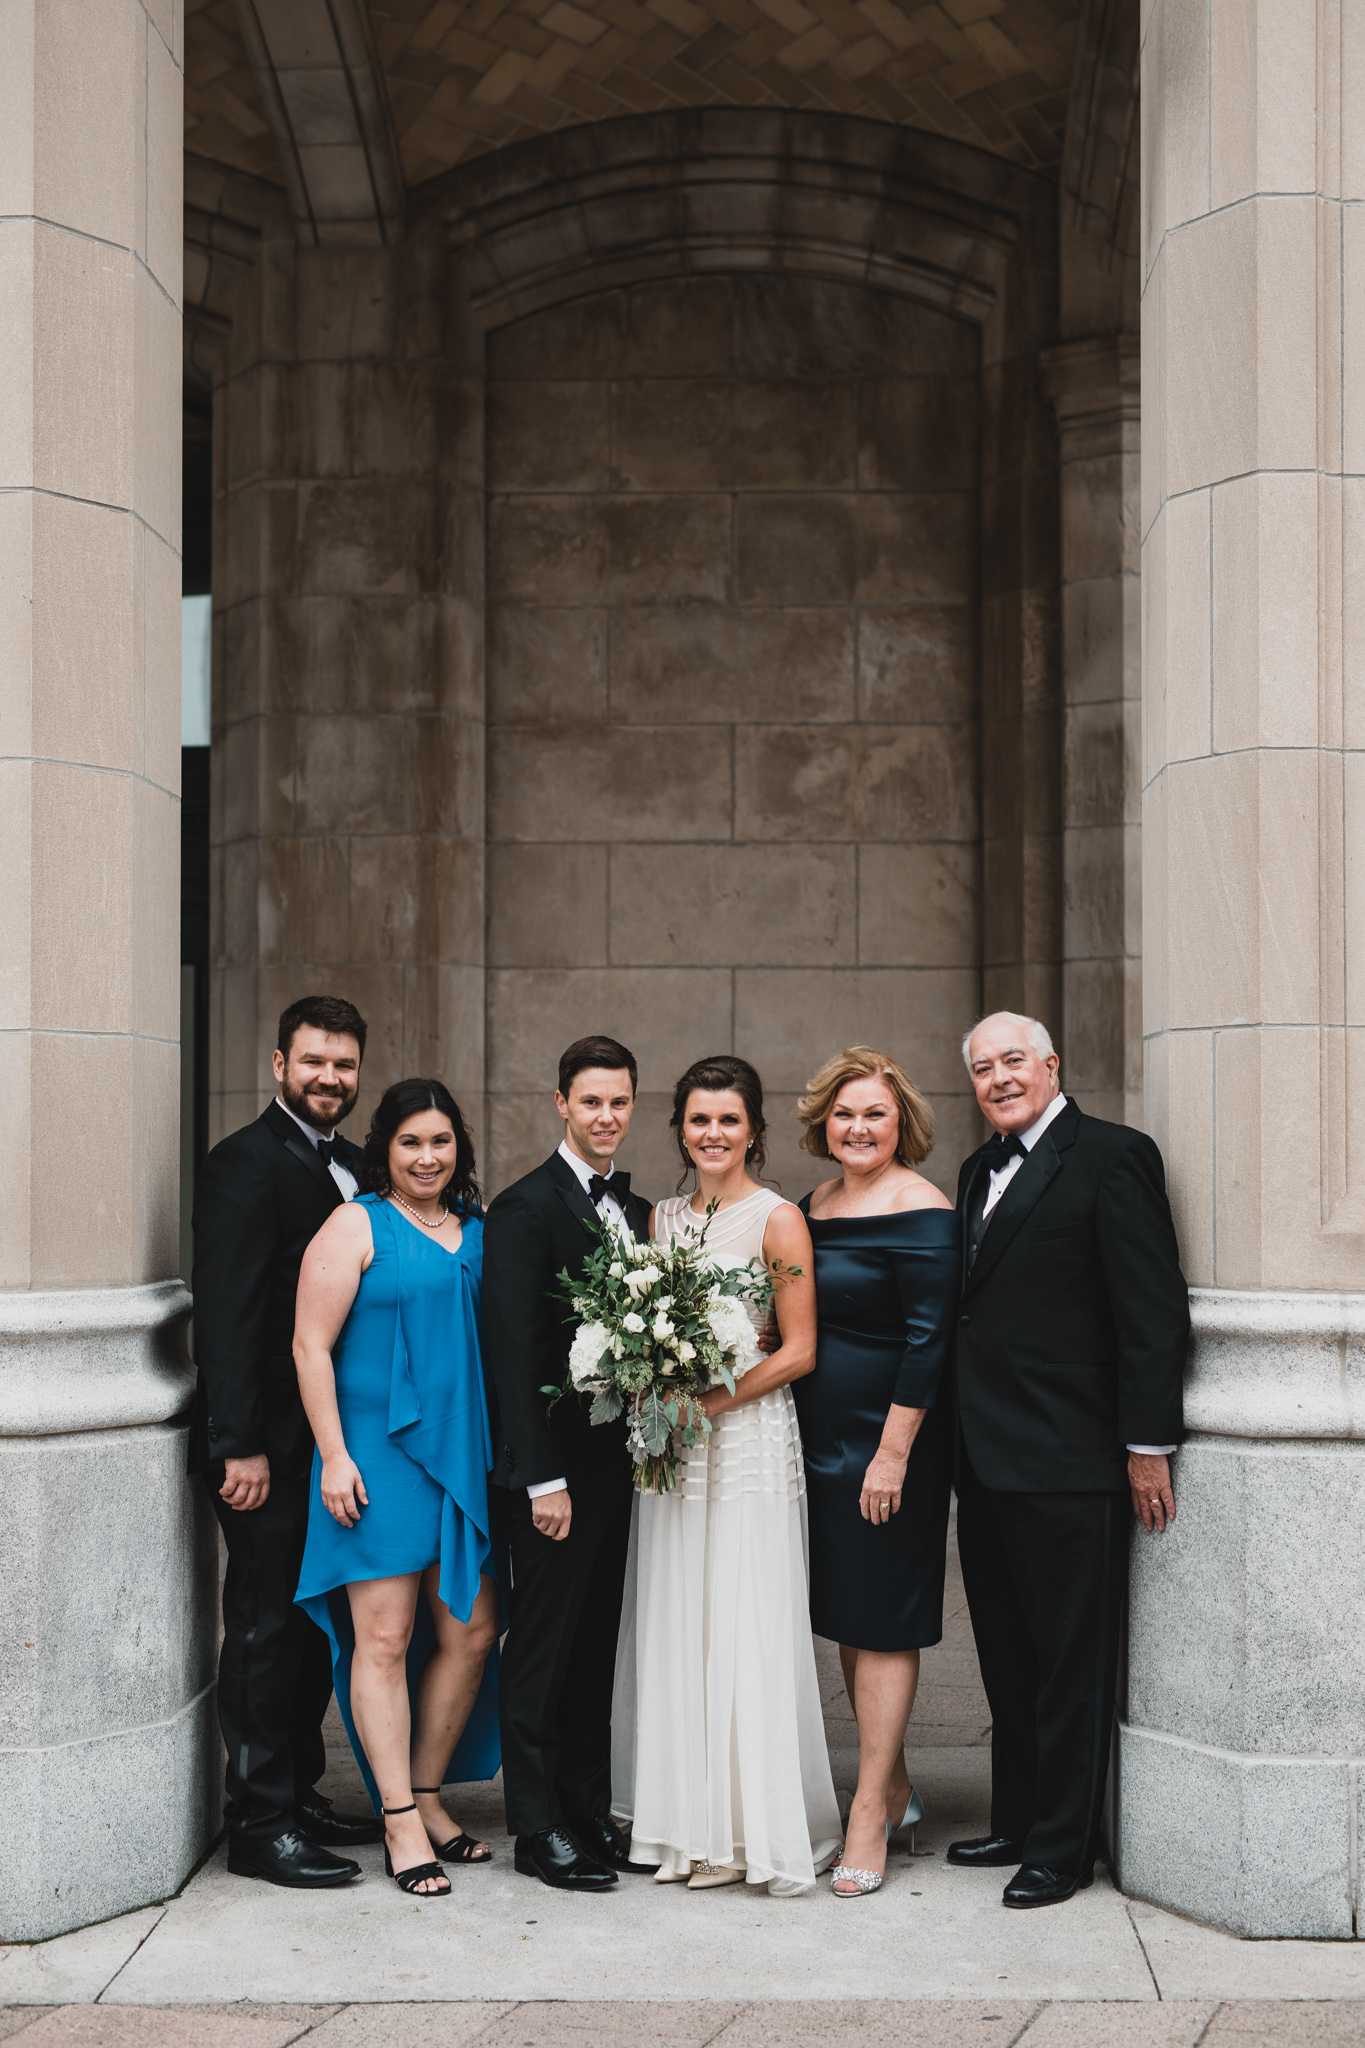 329-WEB-Jonathan-Kuhn-Photography-Amanda-Brennan-Wedding-9351.jpg